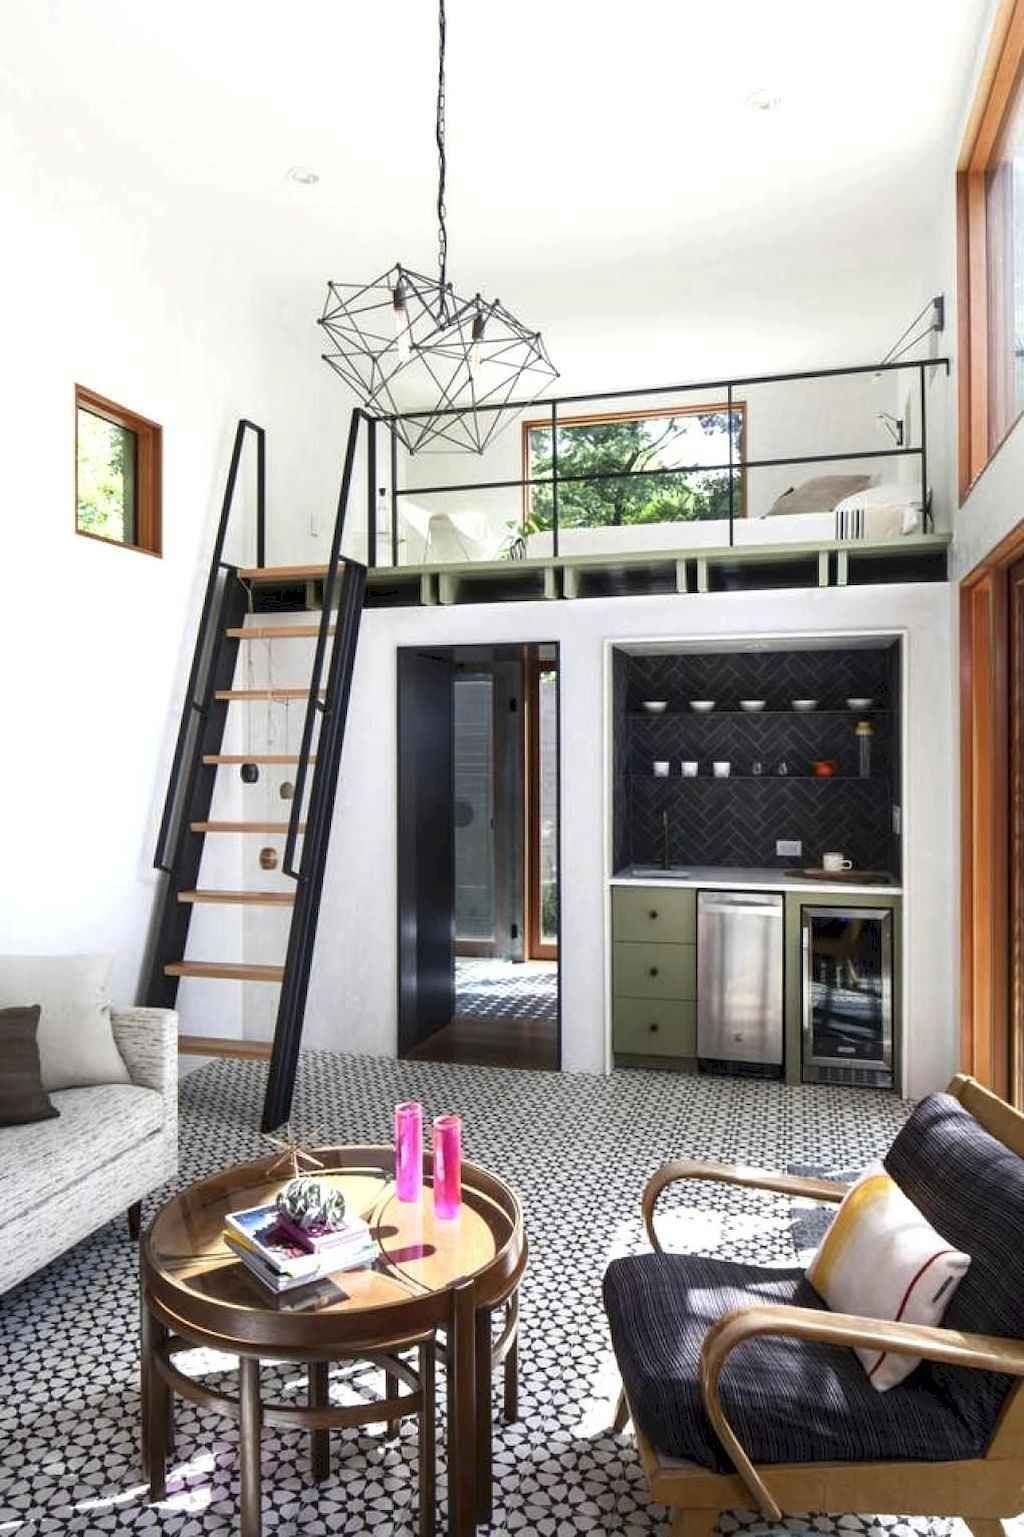 42 Clever Loft Stair For Tiny House Ideas Spaciroom Com Small House Interior Tiny House Interior Small Room Design